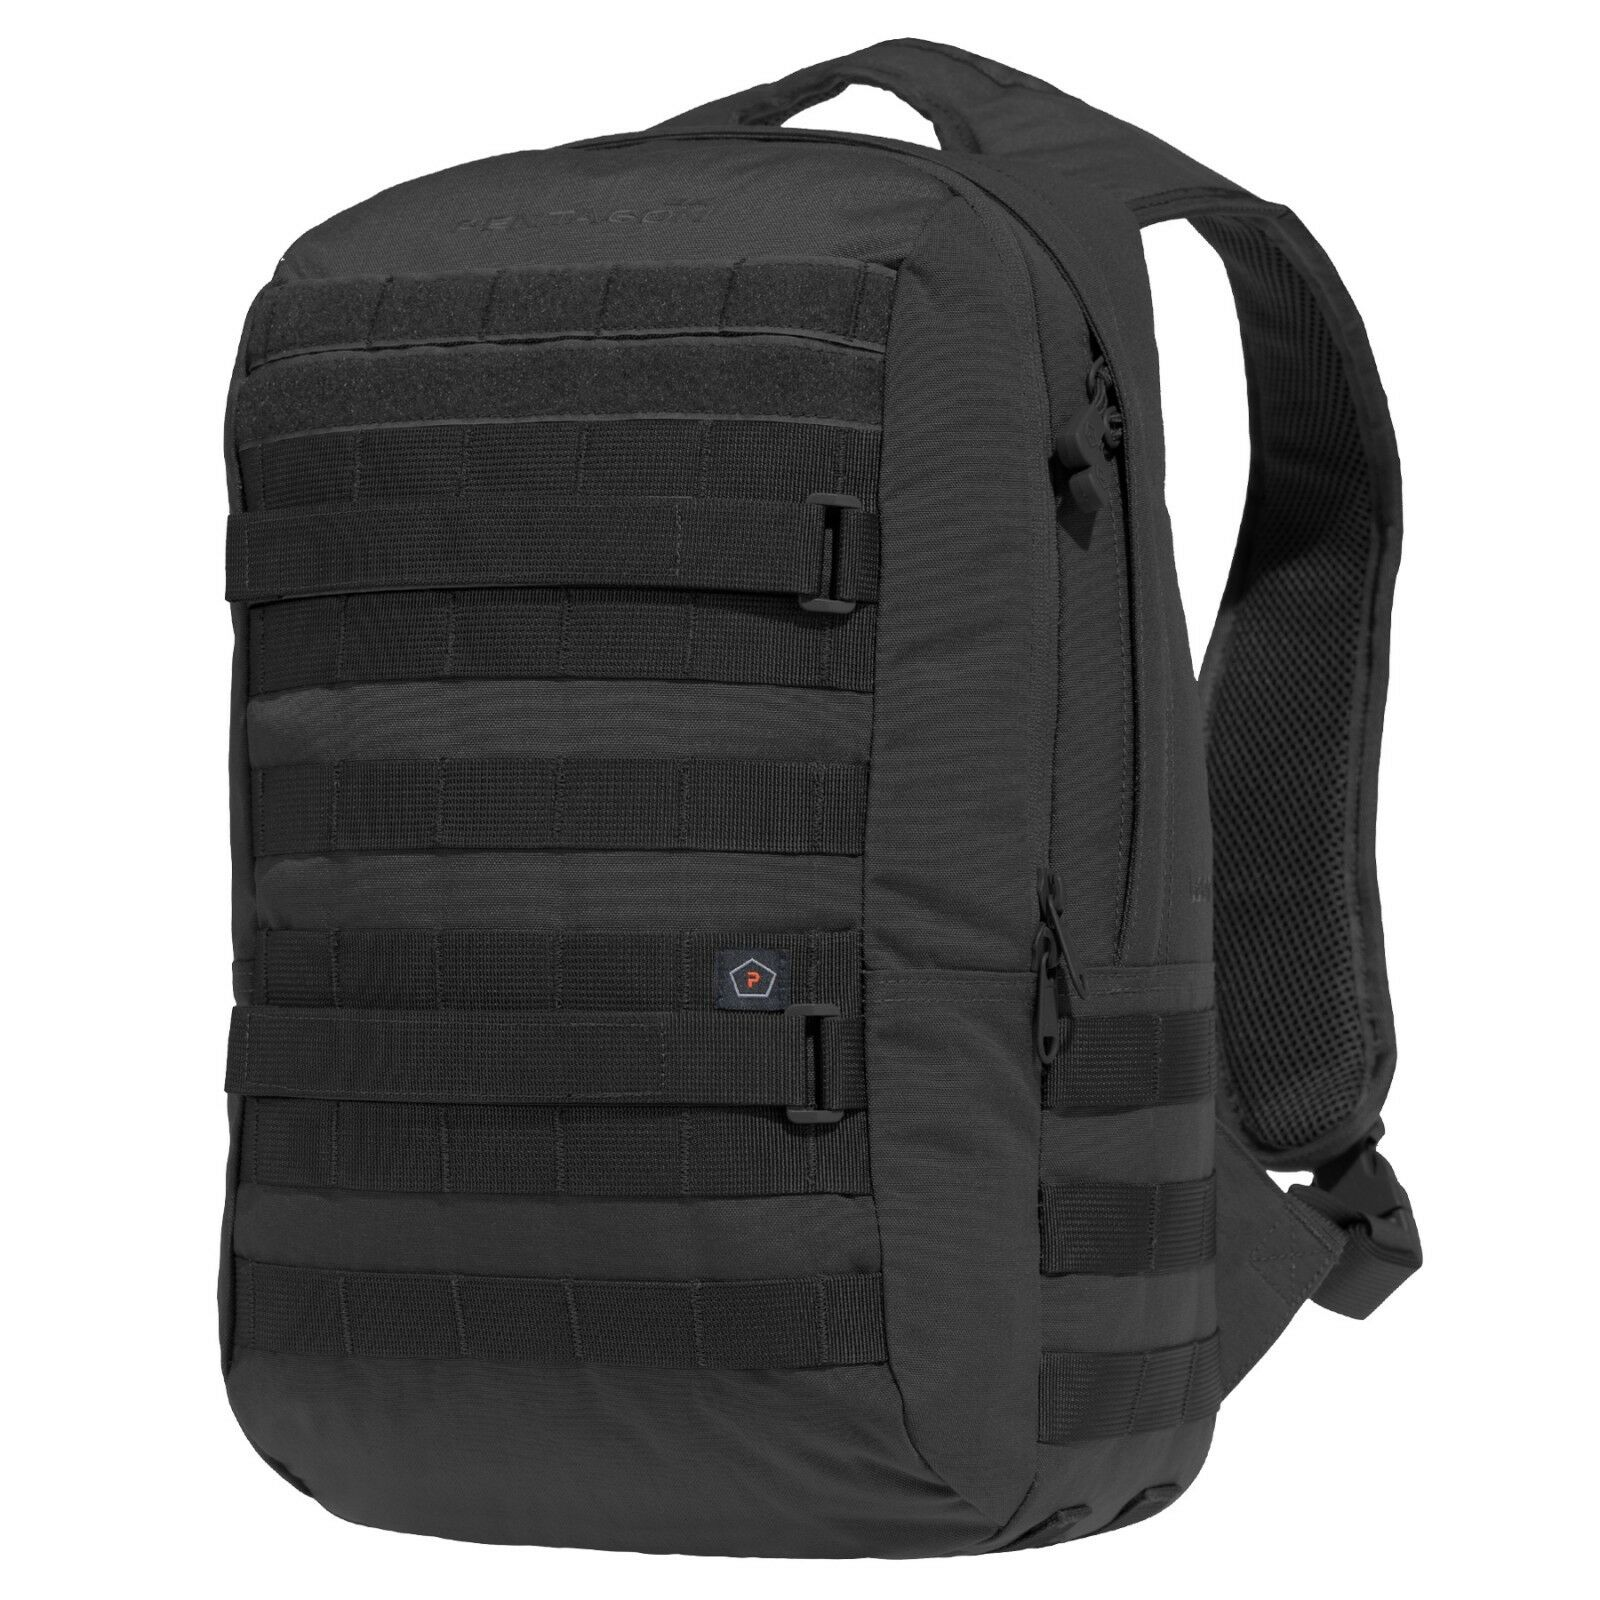 PENTAGON Sac Sac à dos militaire camping camping camping couleurs Noir Oliva Coyote Loup Gris  f19f52